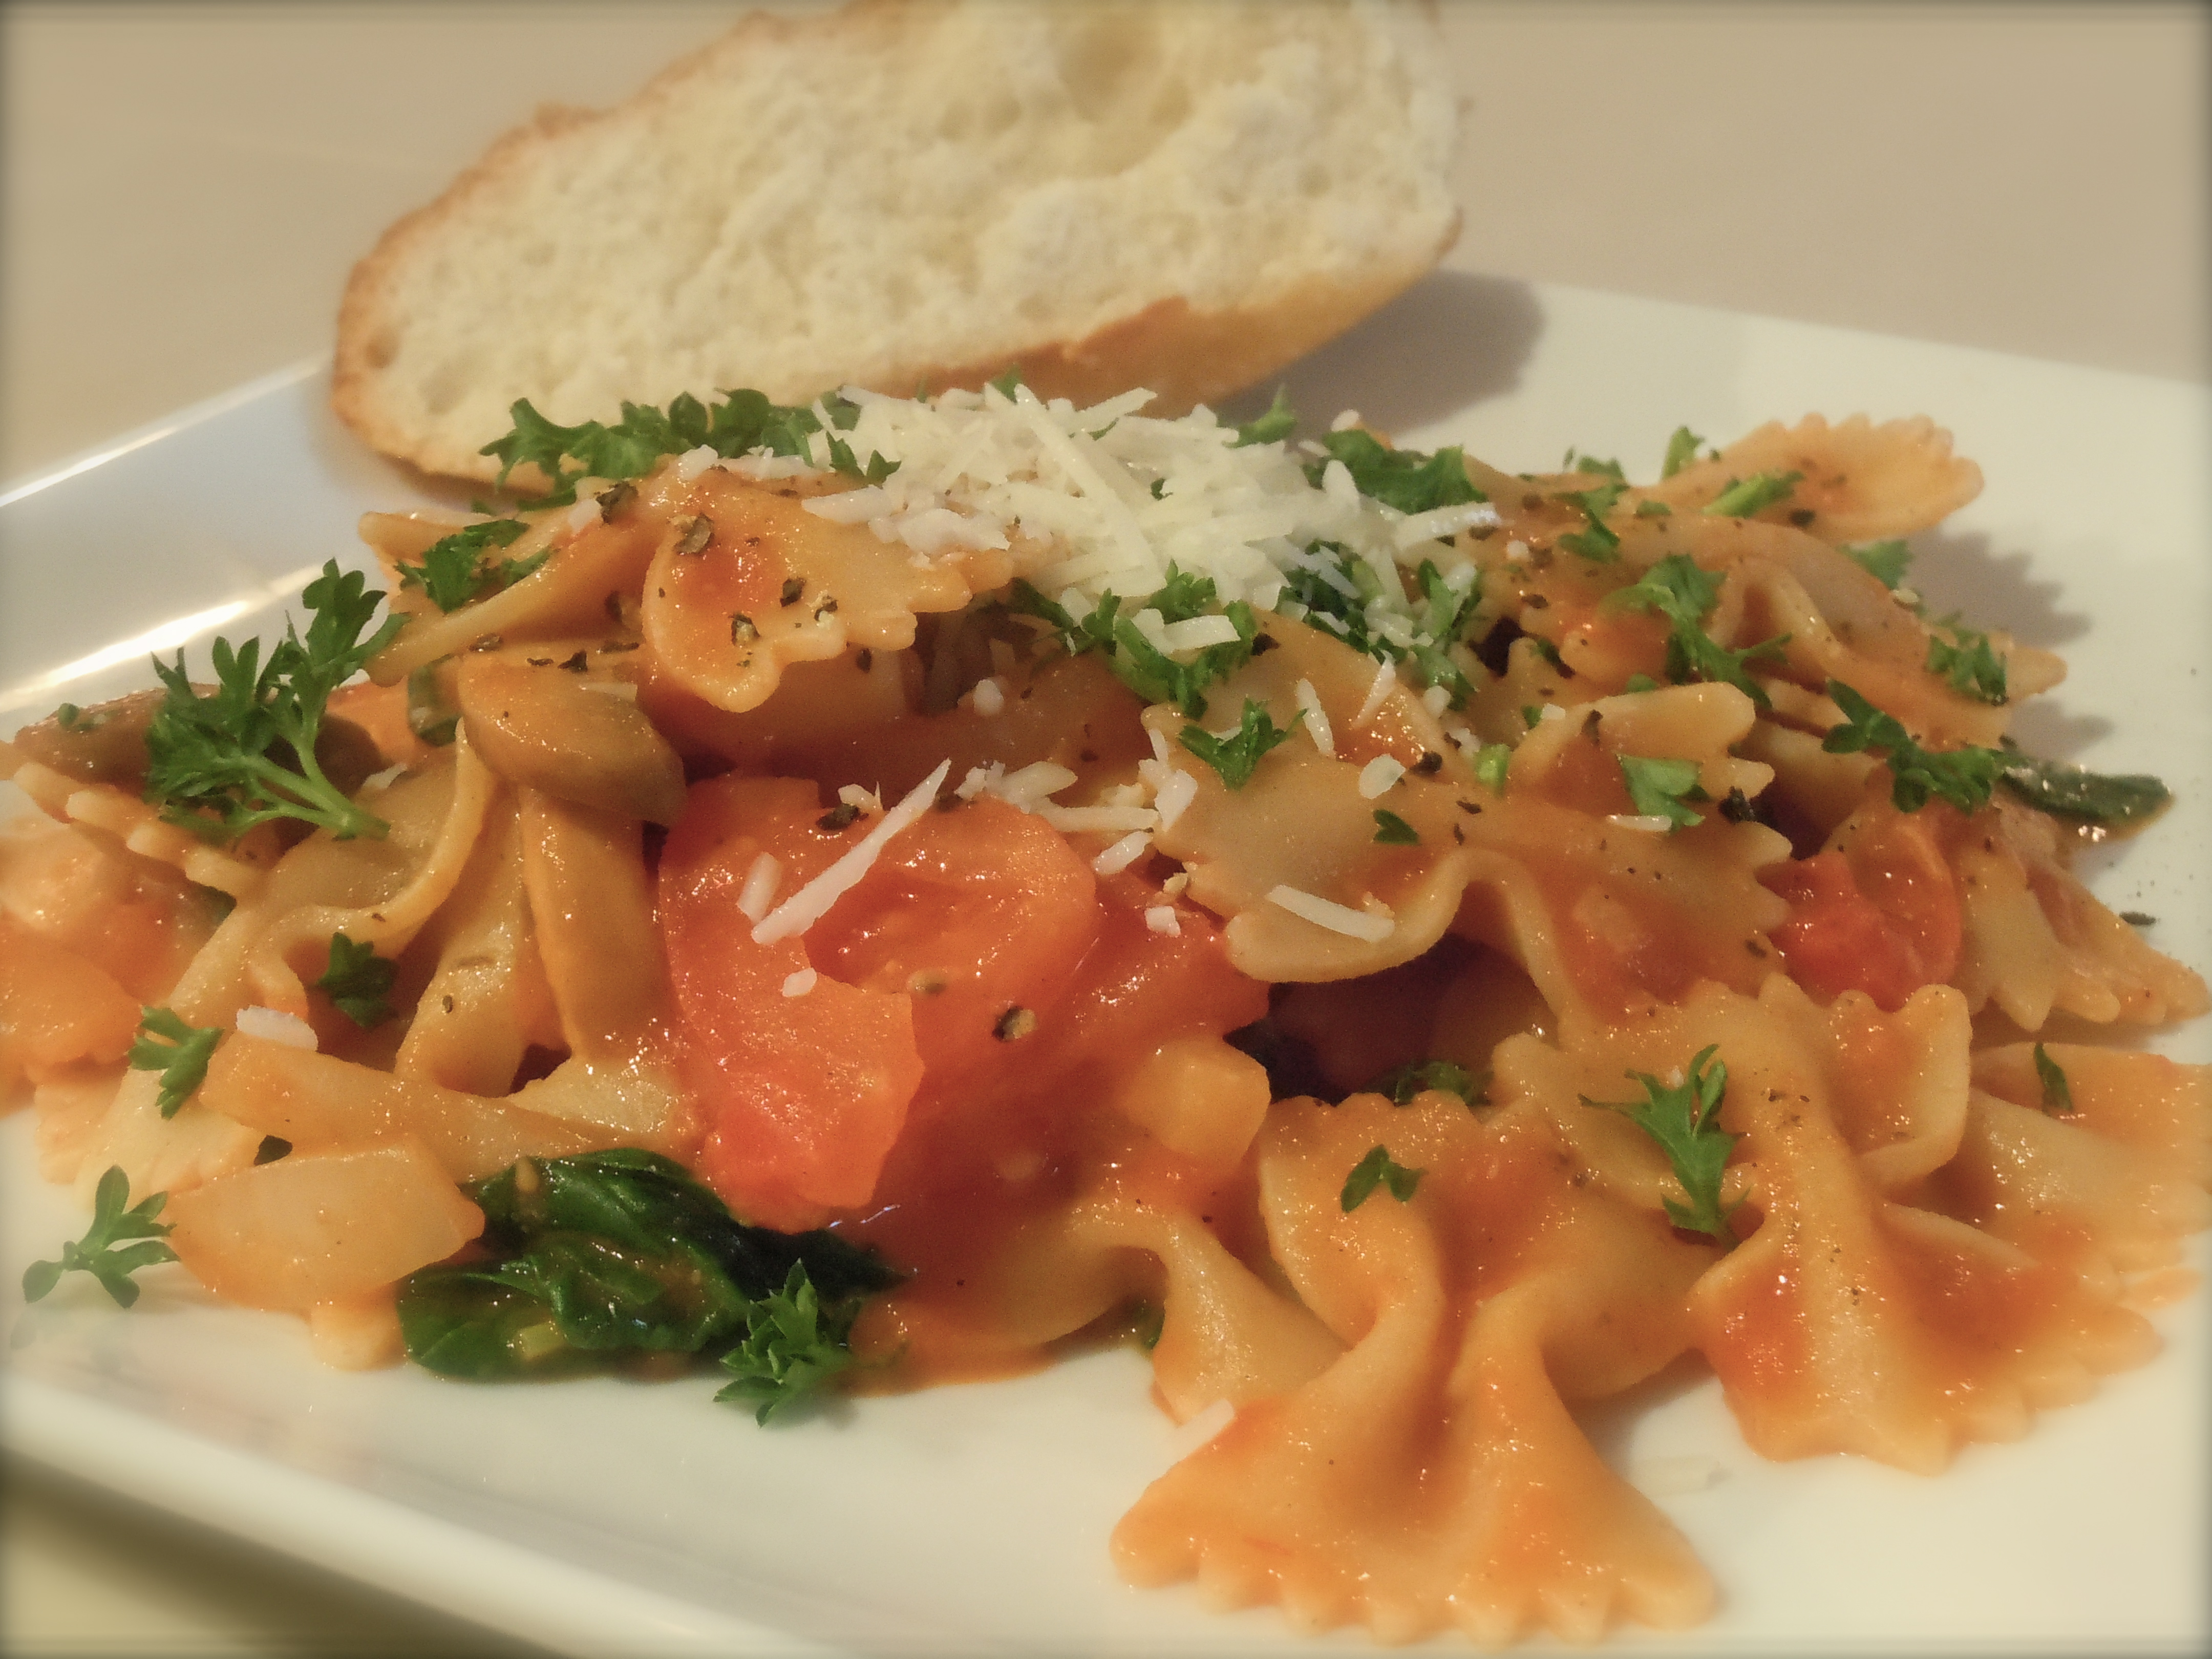 ... rezept yummly farfalle abruzzese with veal porcini and spinach recipes